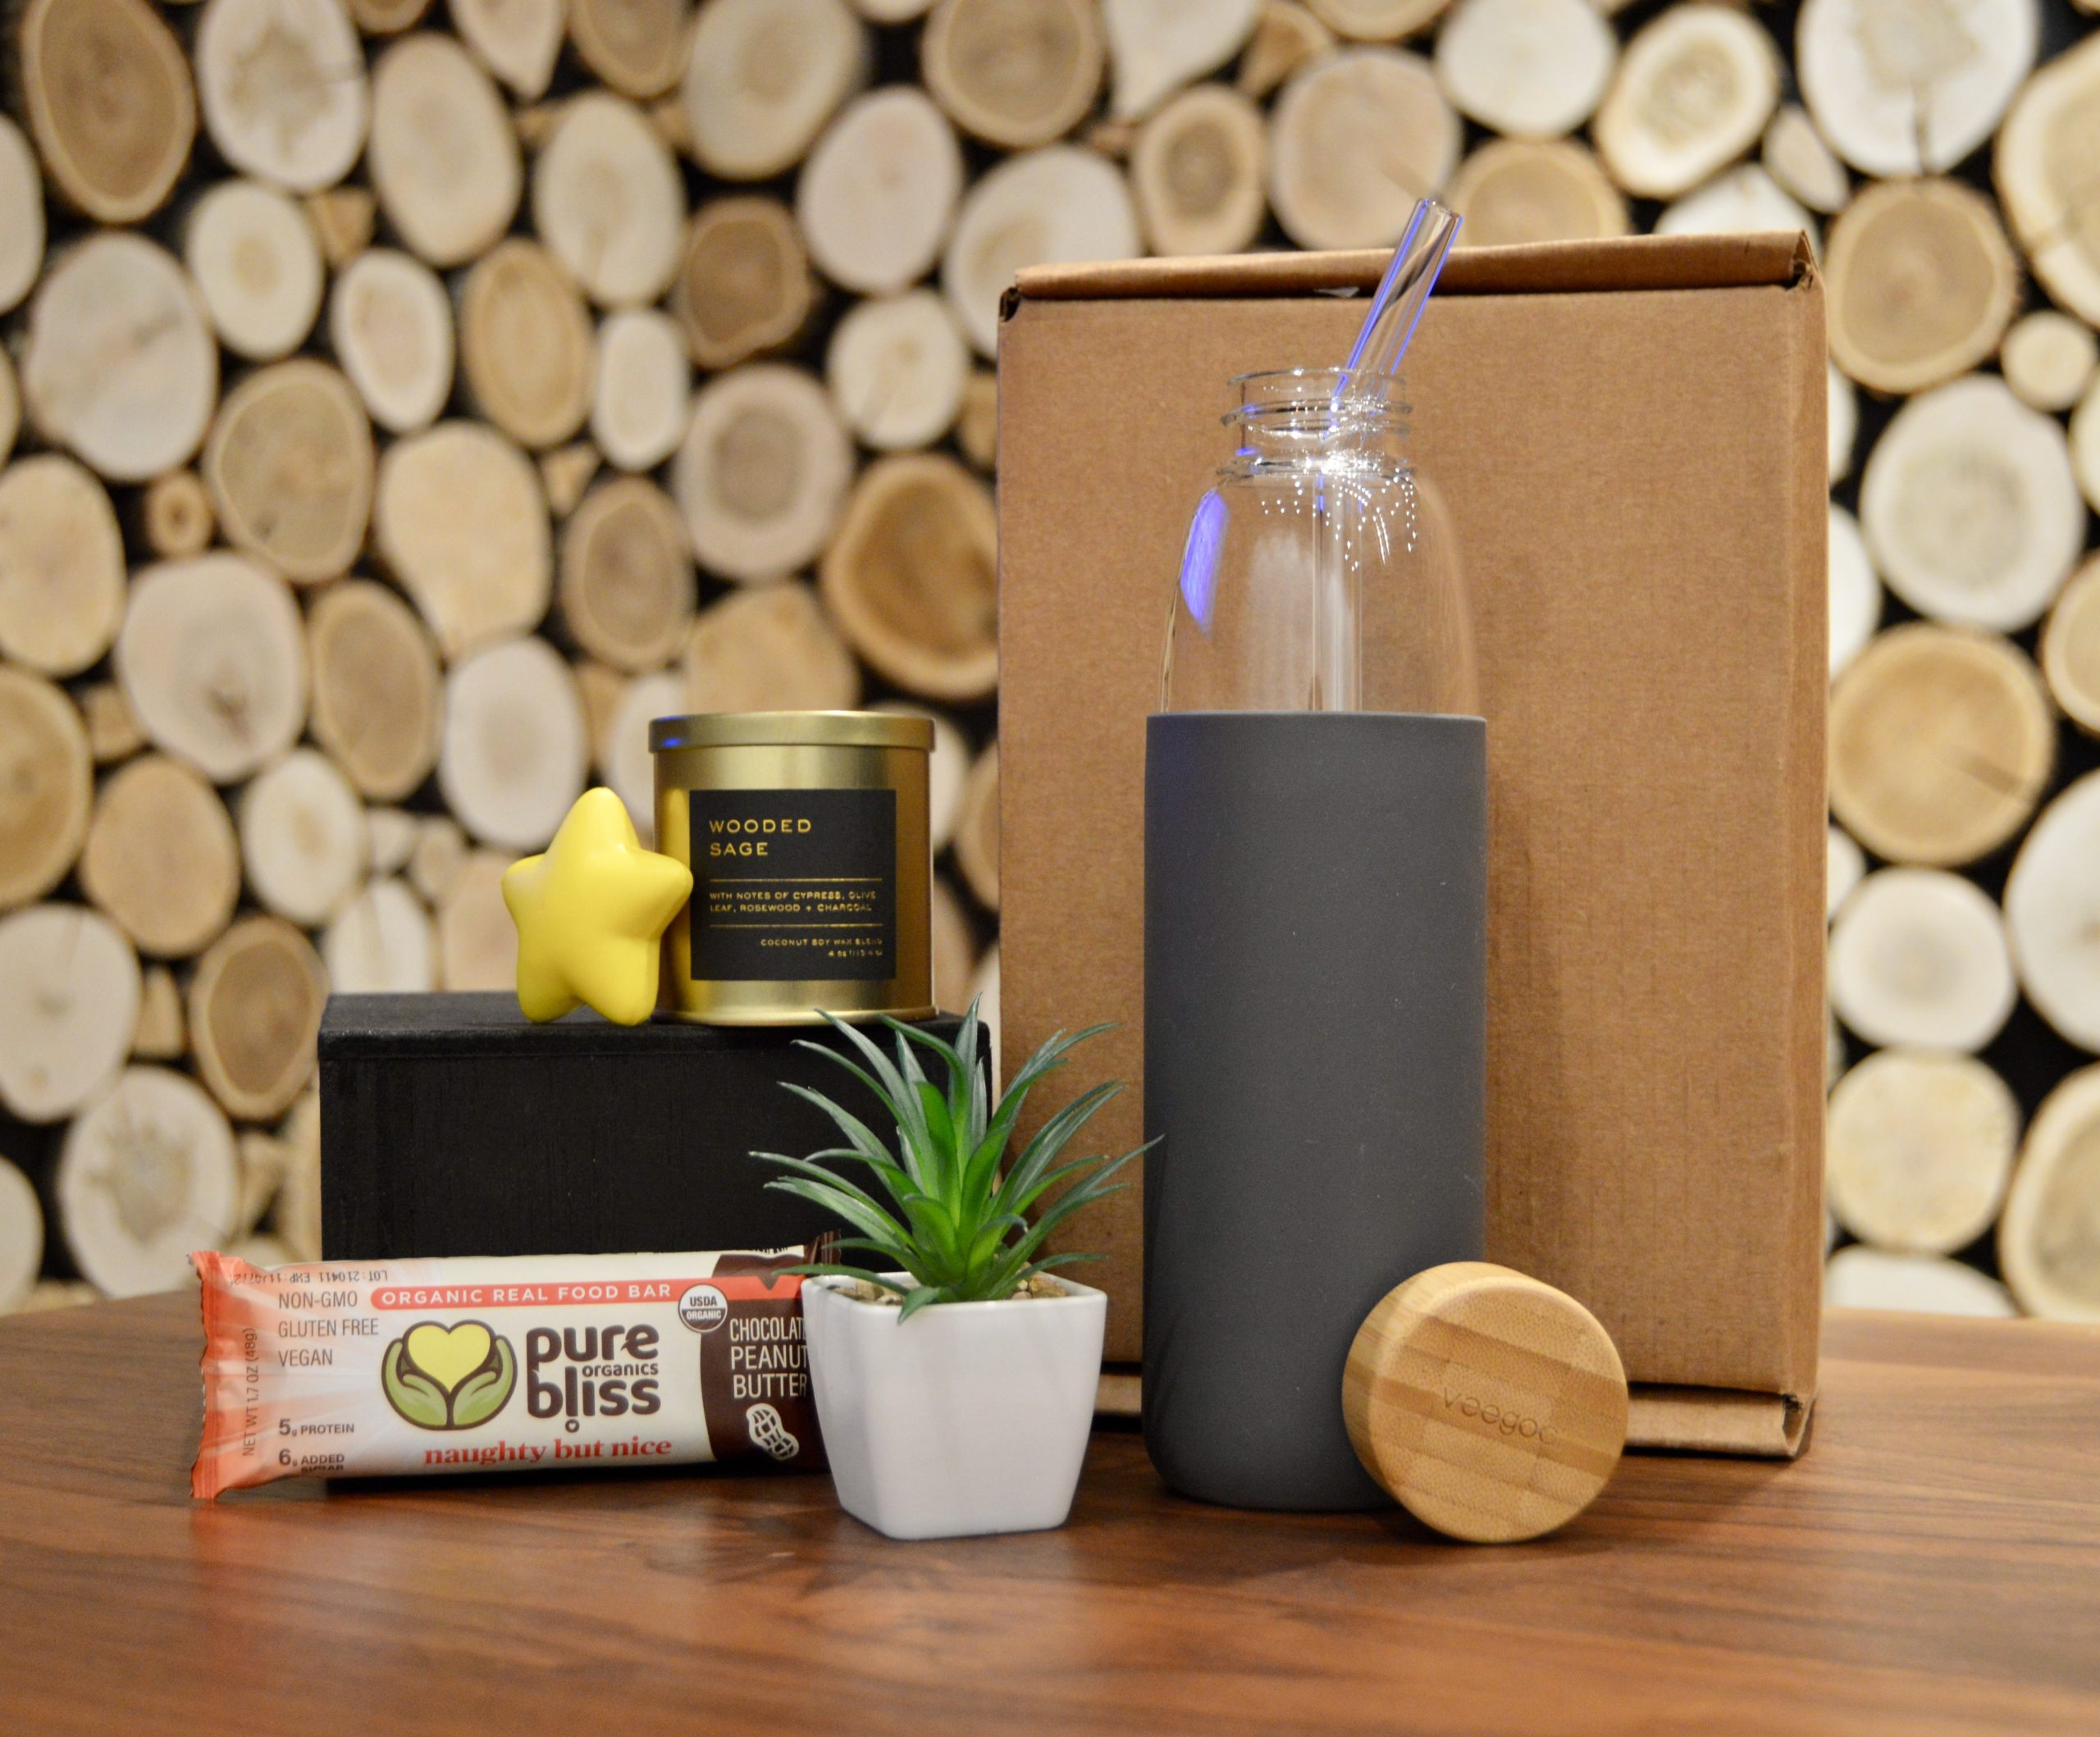 Elevated Meeting Package - Delight your guests